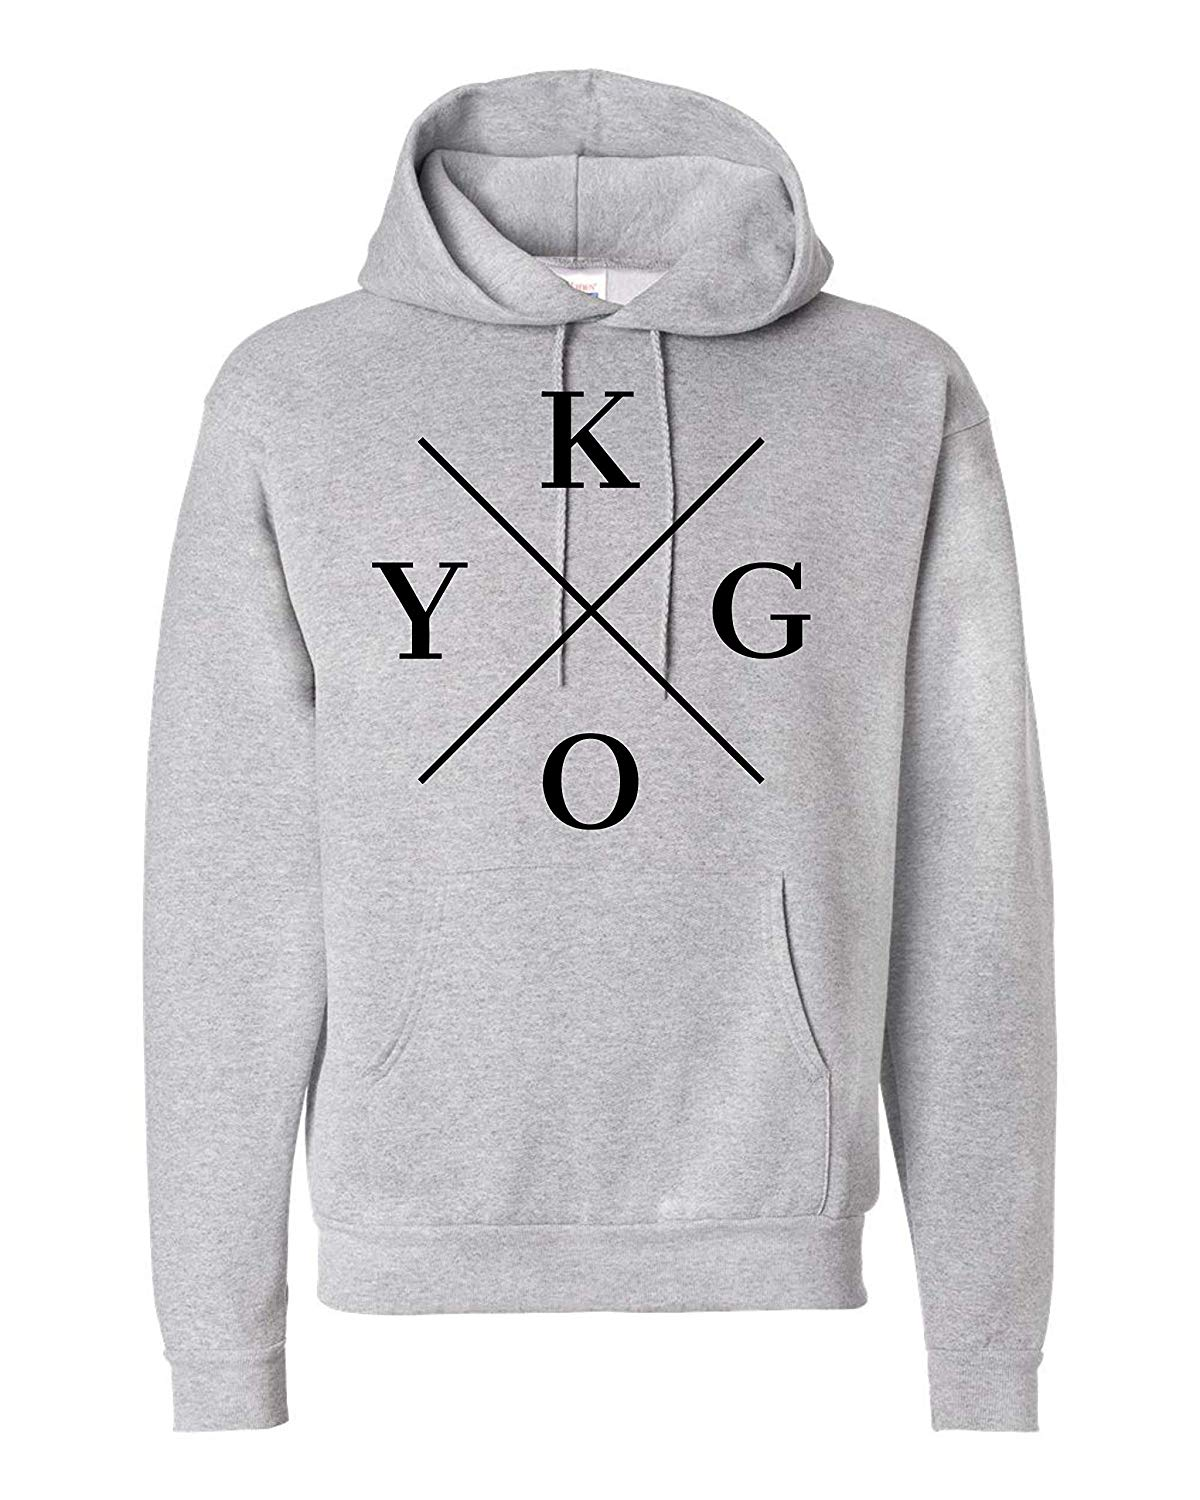 TryMeDesigns KYGO Sportswear Winter Summer Coat Streetwear Gym Jogger Hoodies Sweatshirts